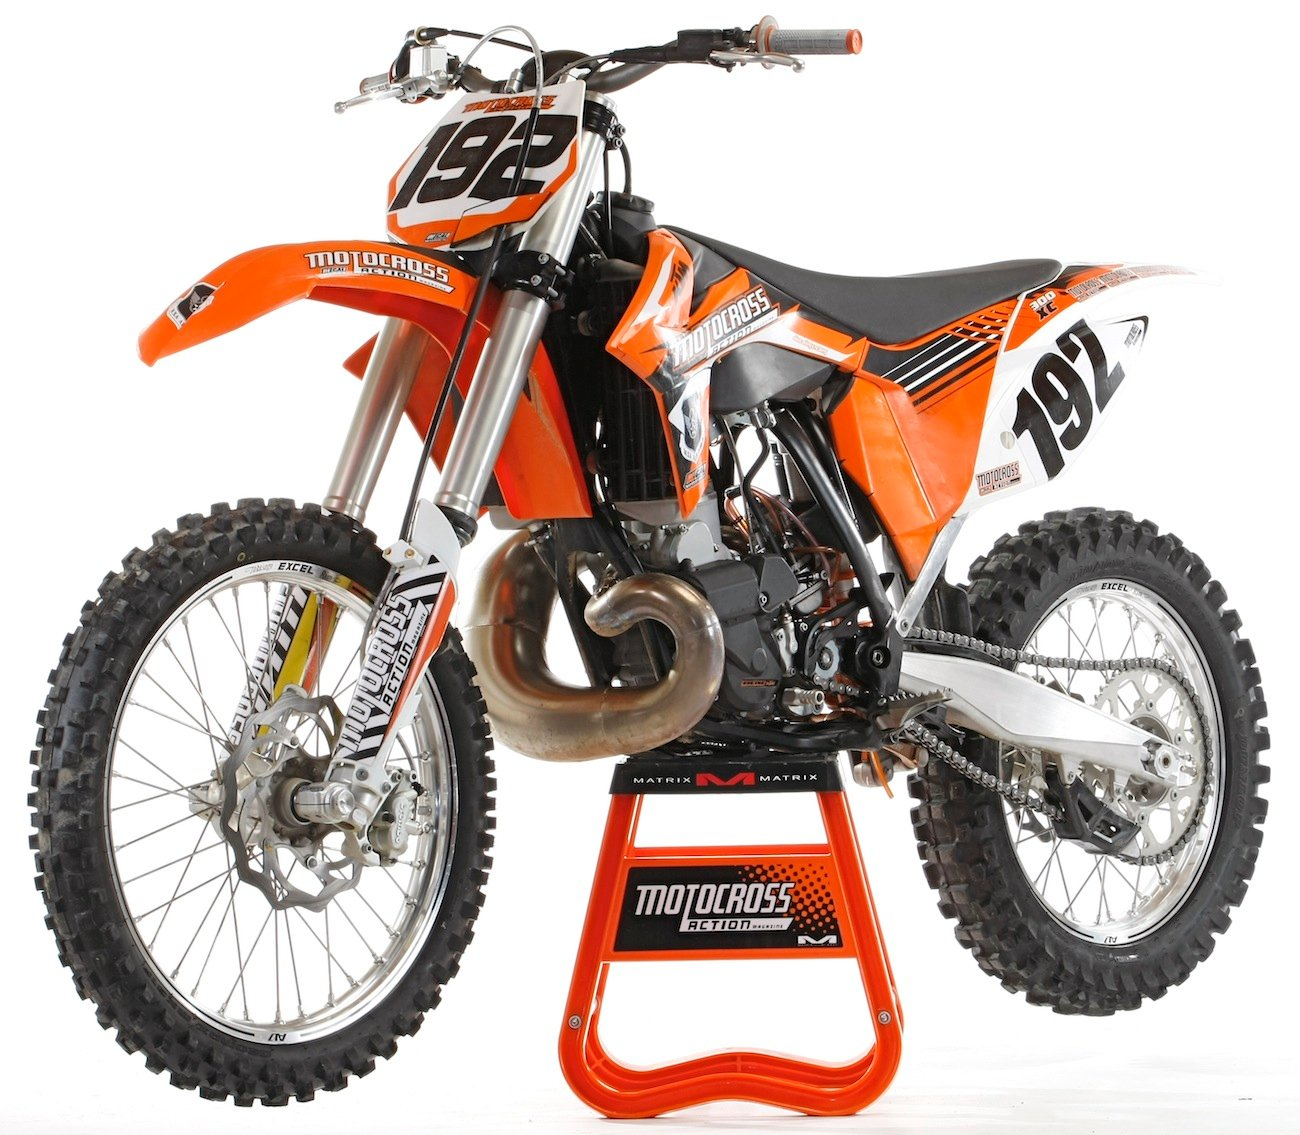 Inside Secrets Of Building A Moto Ready Ktm 300xc Two Stroke Racer 2013 450 Xc W Wiring Diagram Ktm300angle